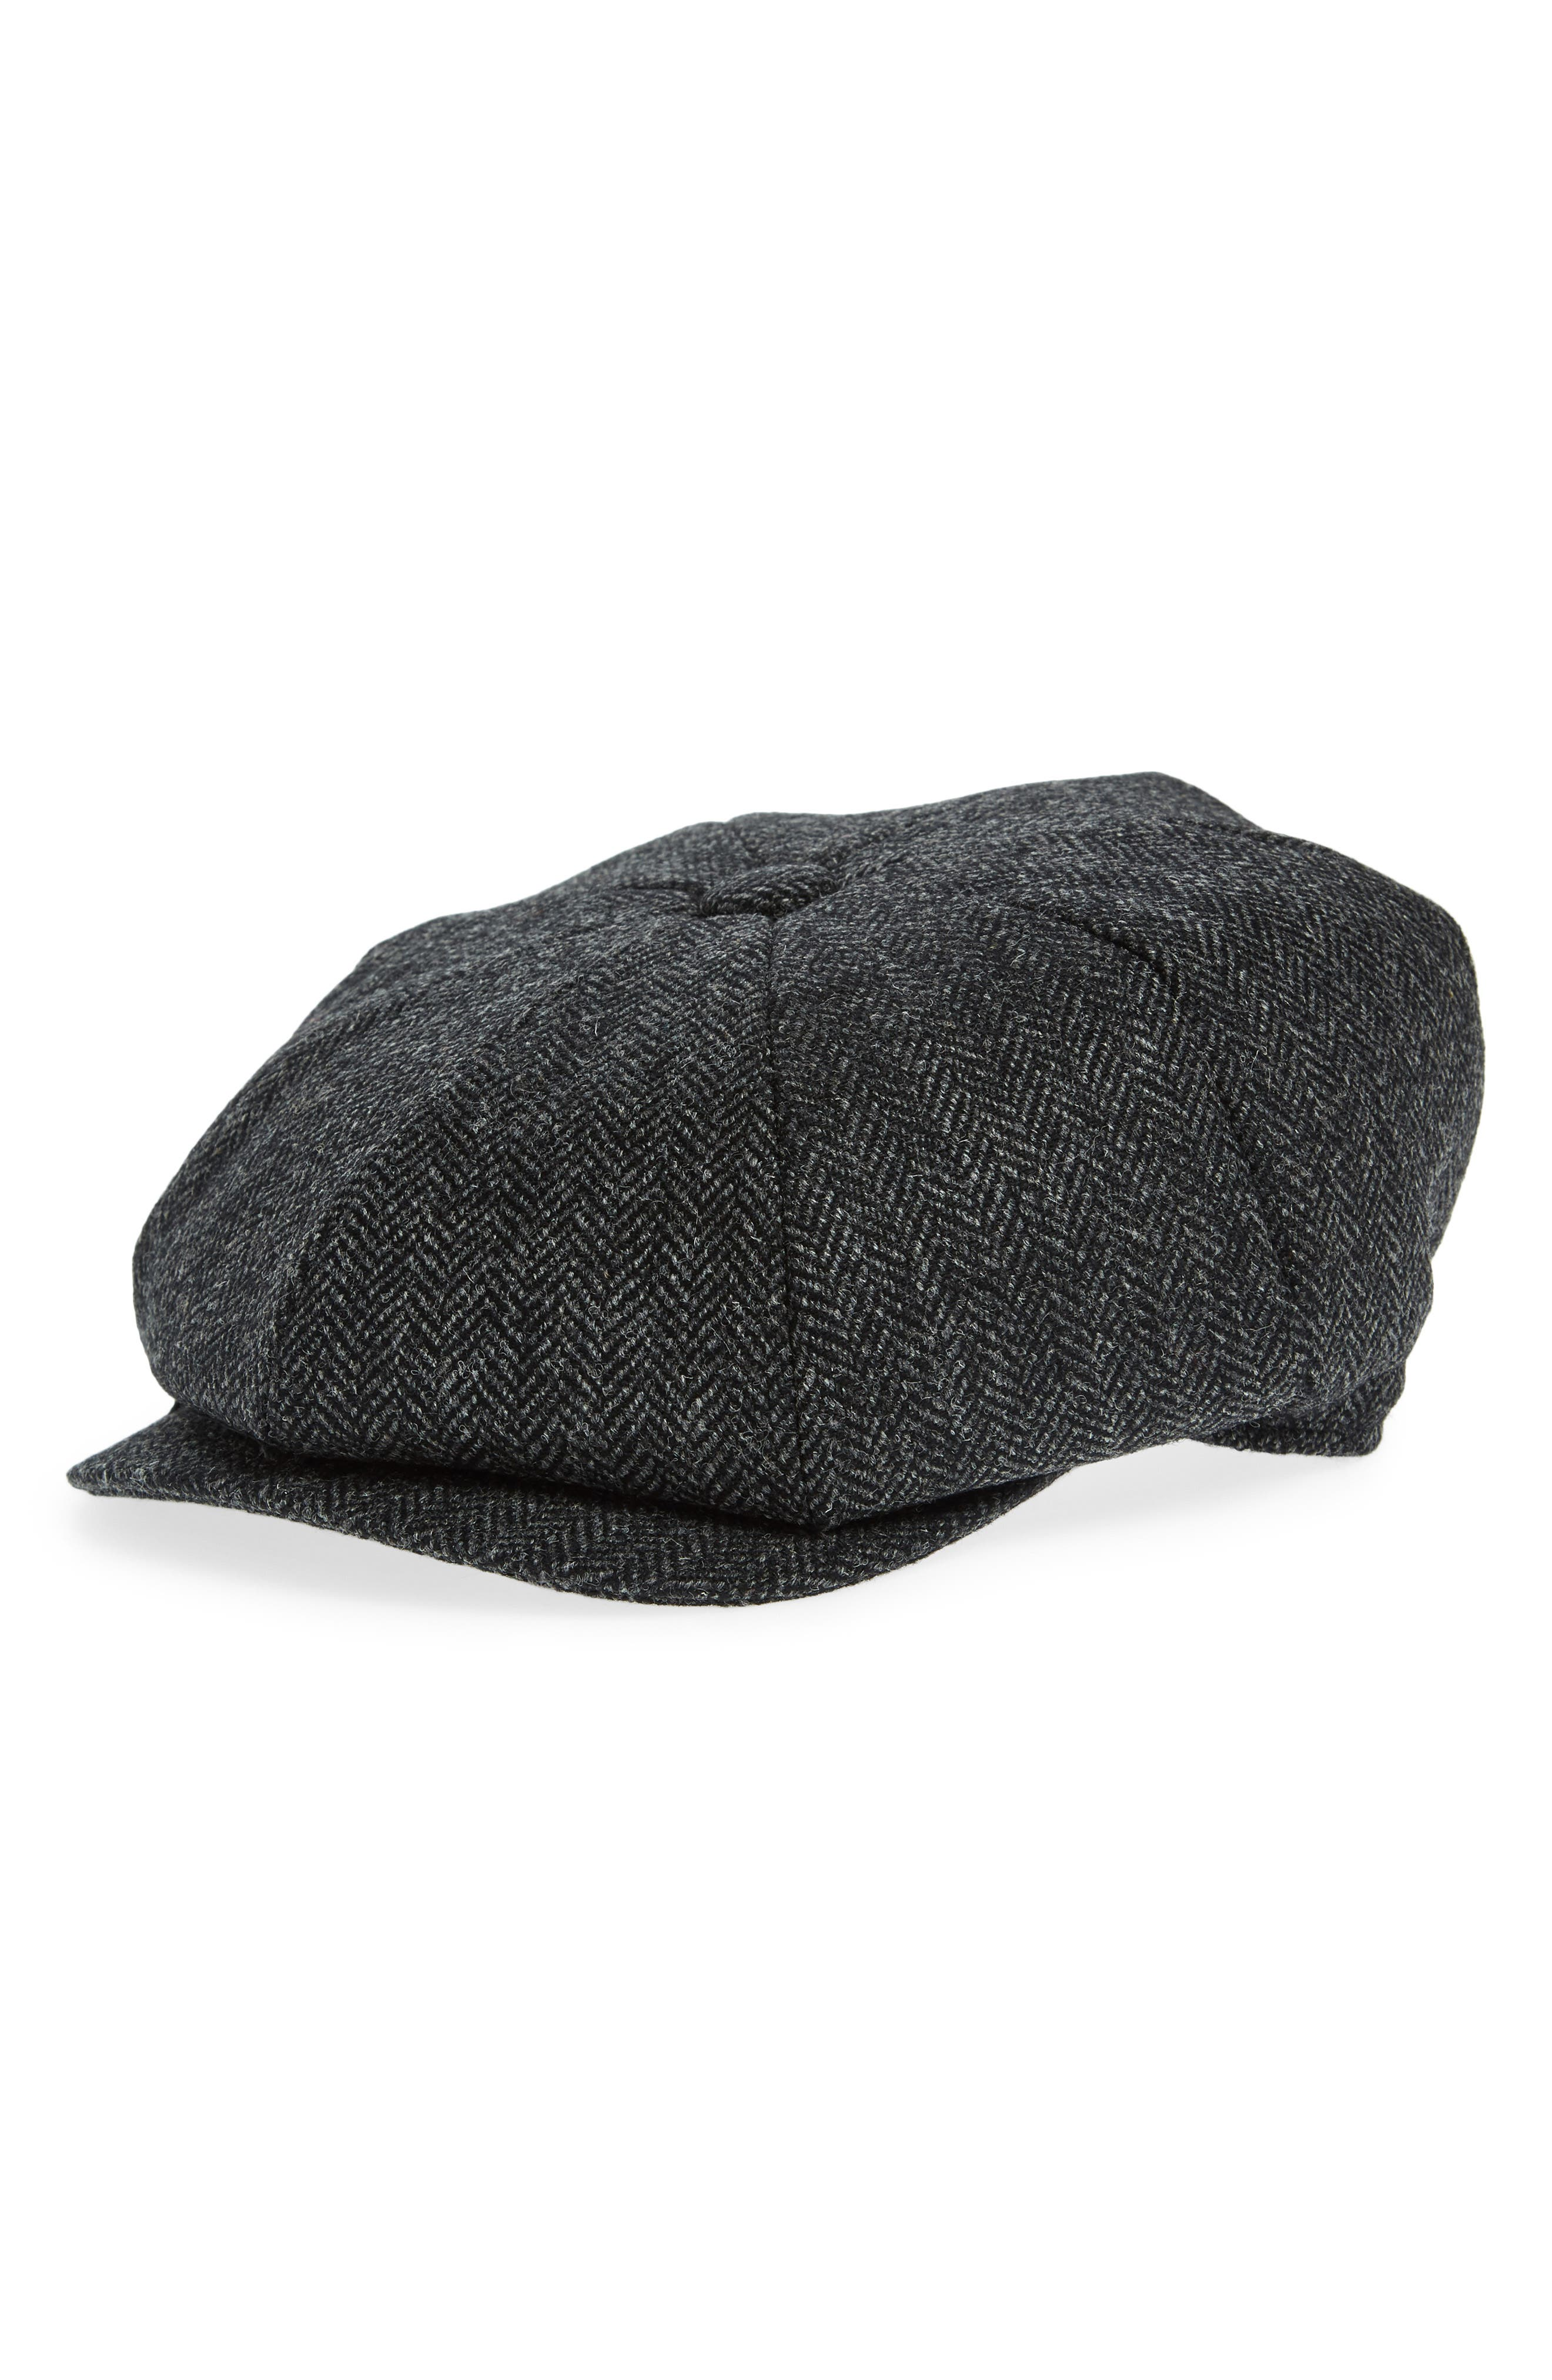 Christy's Baker Boy Wool Driving Cap